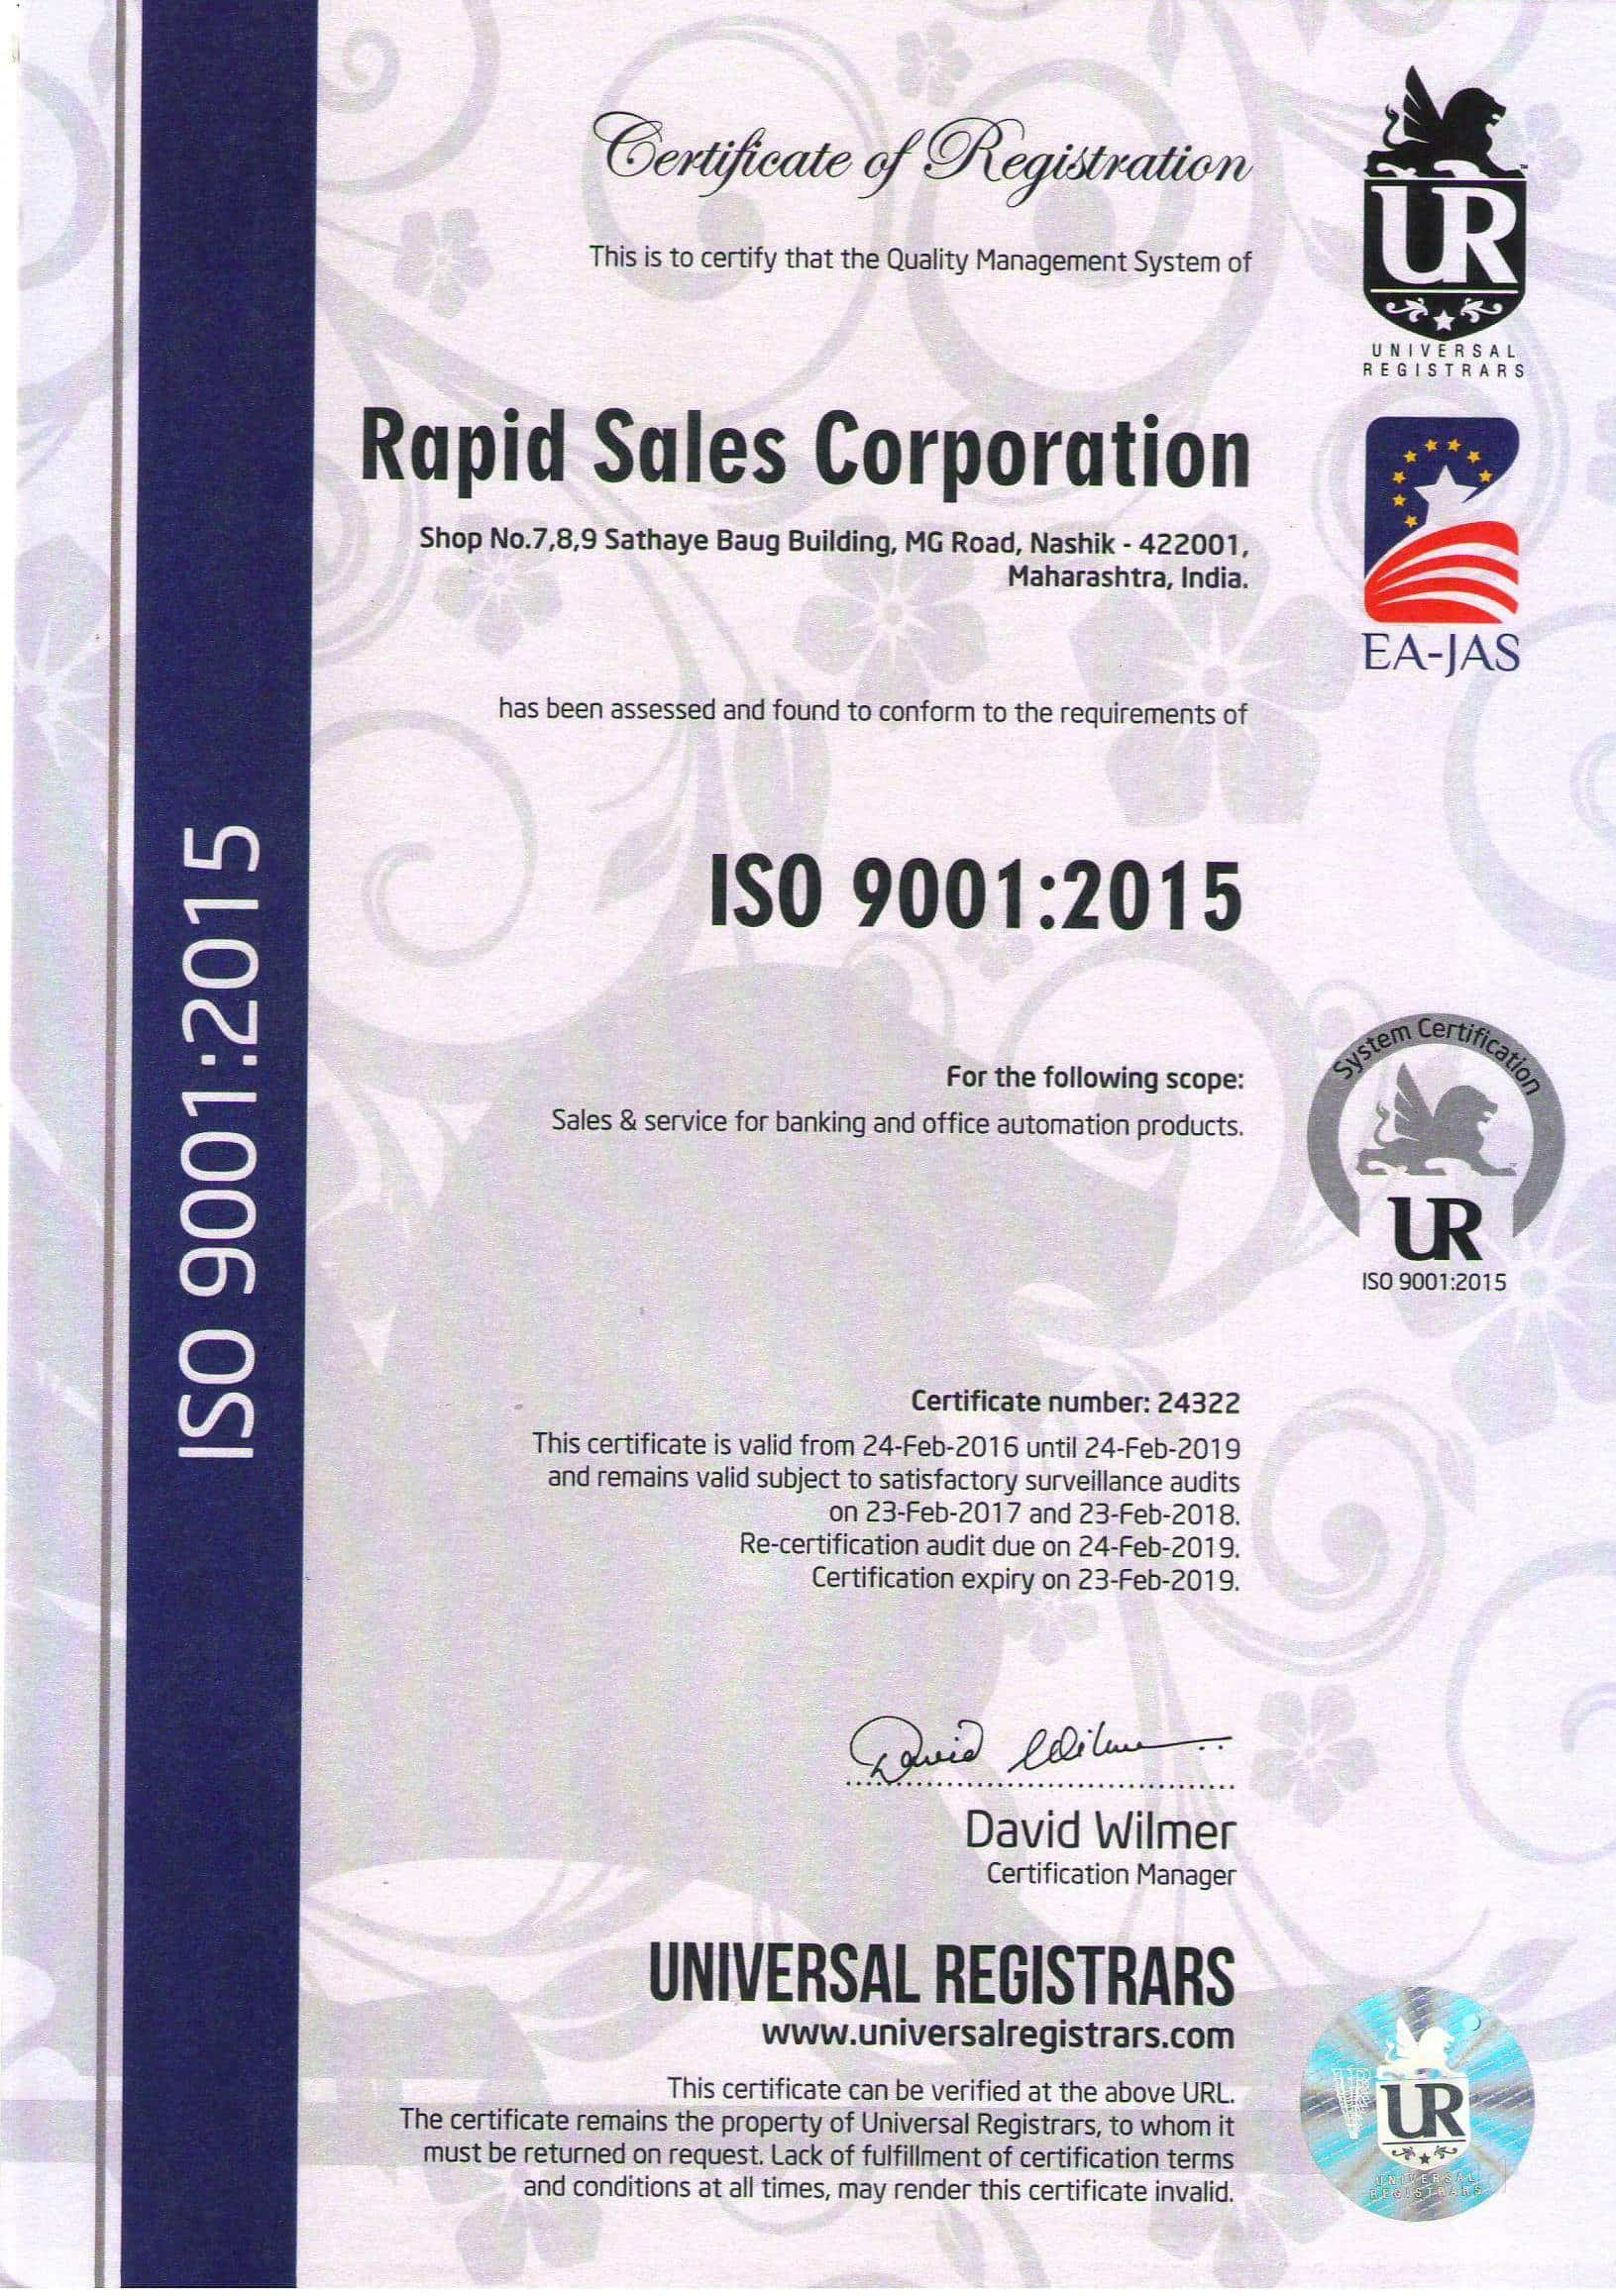 Rapid Sales Corporation, M G Road - Currency Counting